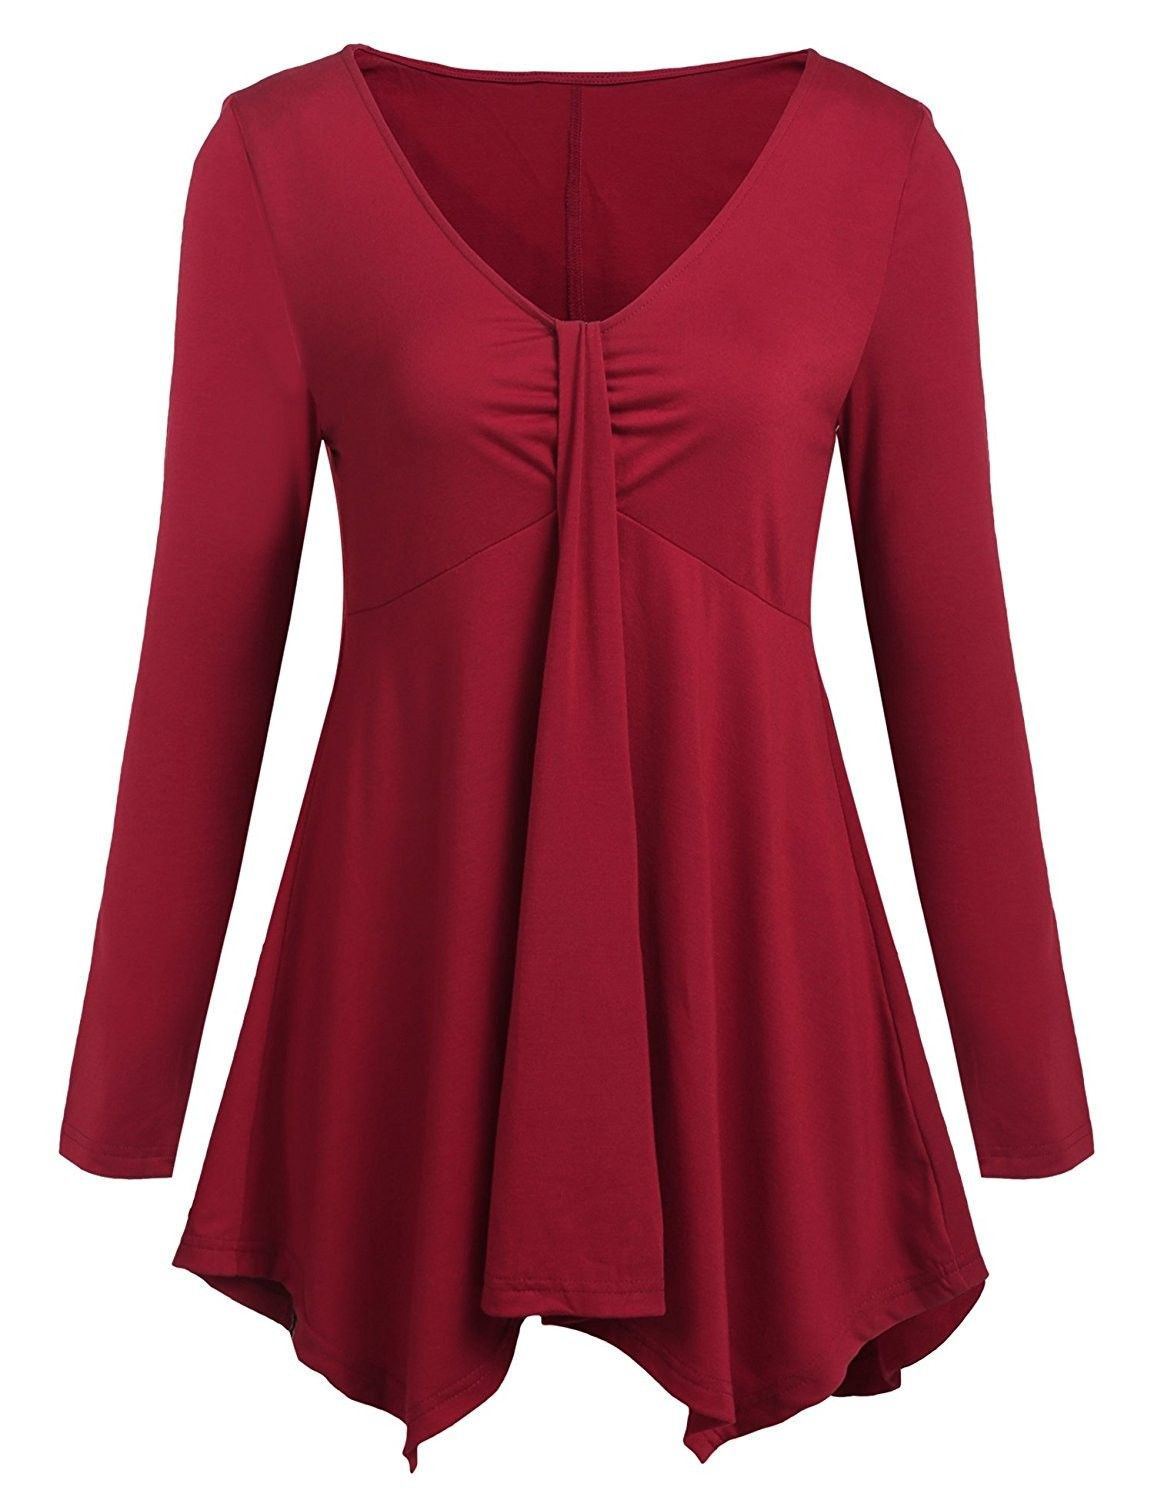 Women V Neck Twist Knot Front Blouse Top Casual Asymmetrical Hem Tunics Tops  - Wine Red - CD1878IDIES   Womens long skirt, Ladies tops fashion, Tunic  tops